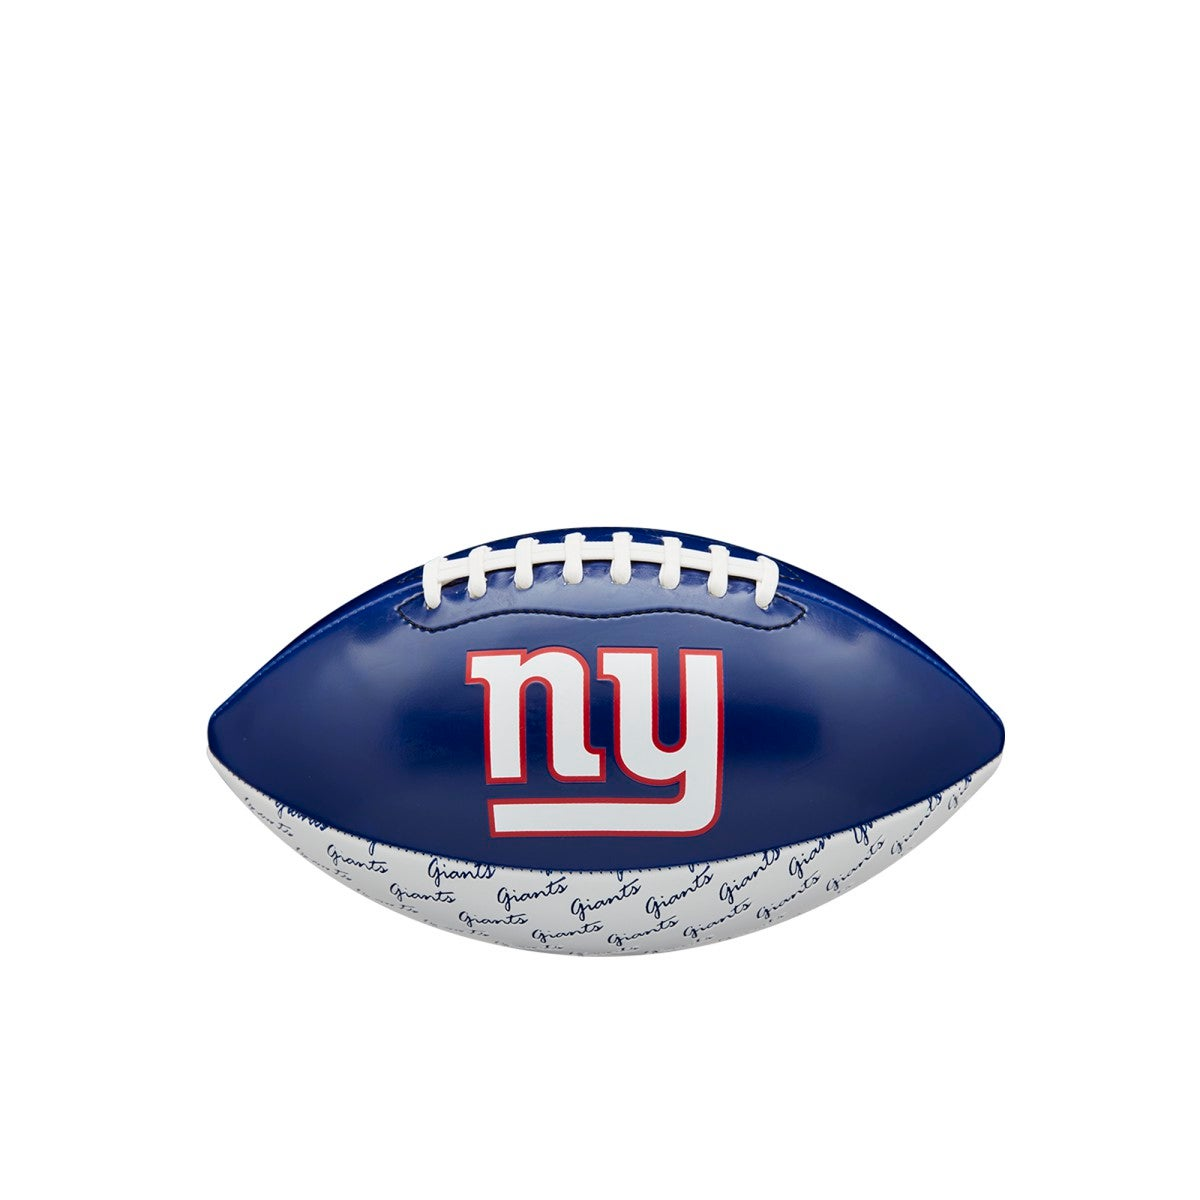 NFL City Pride Football - New York Giants